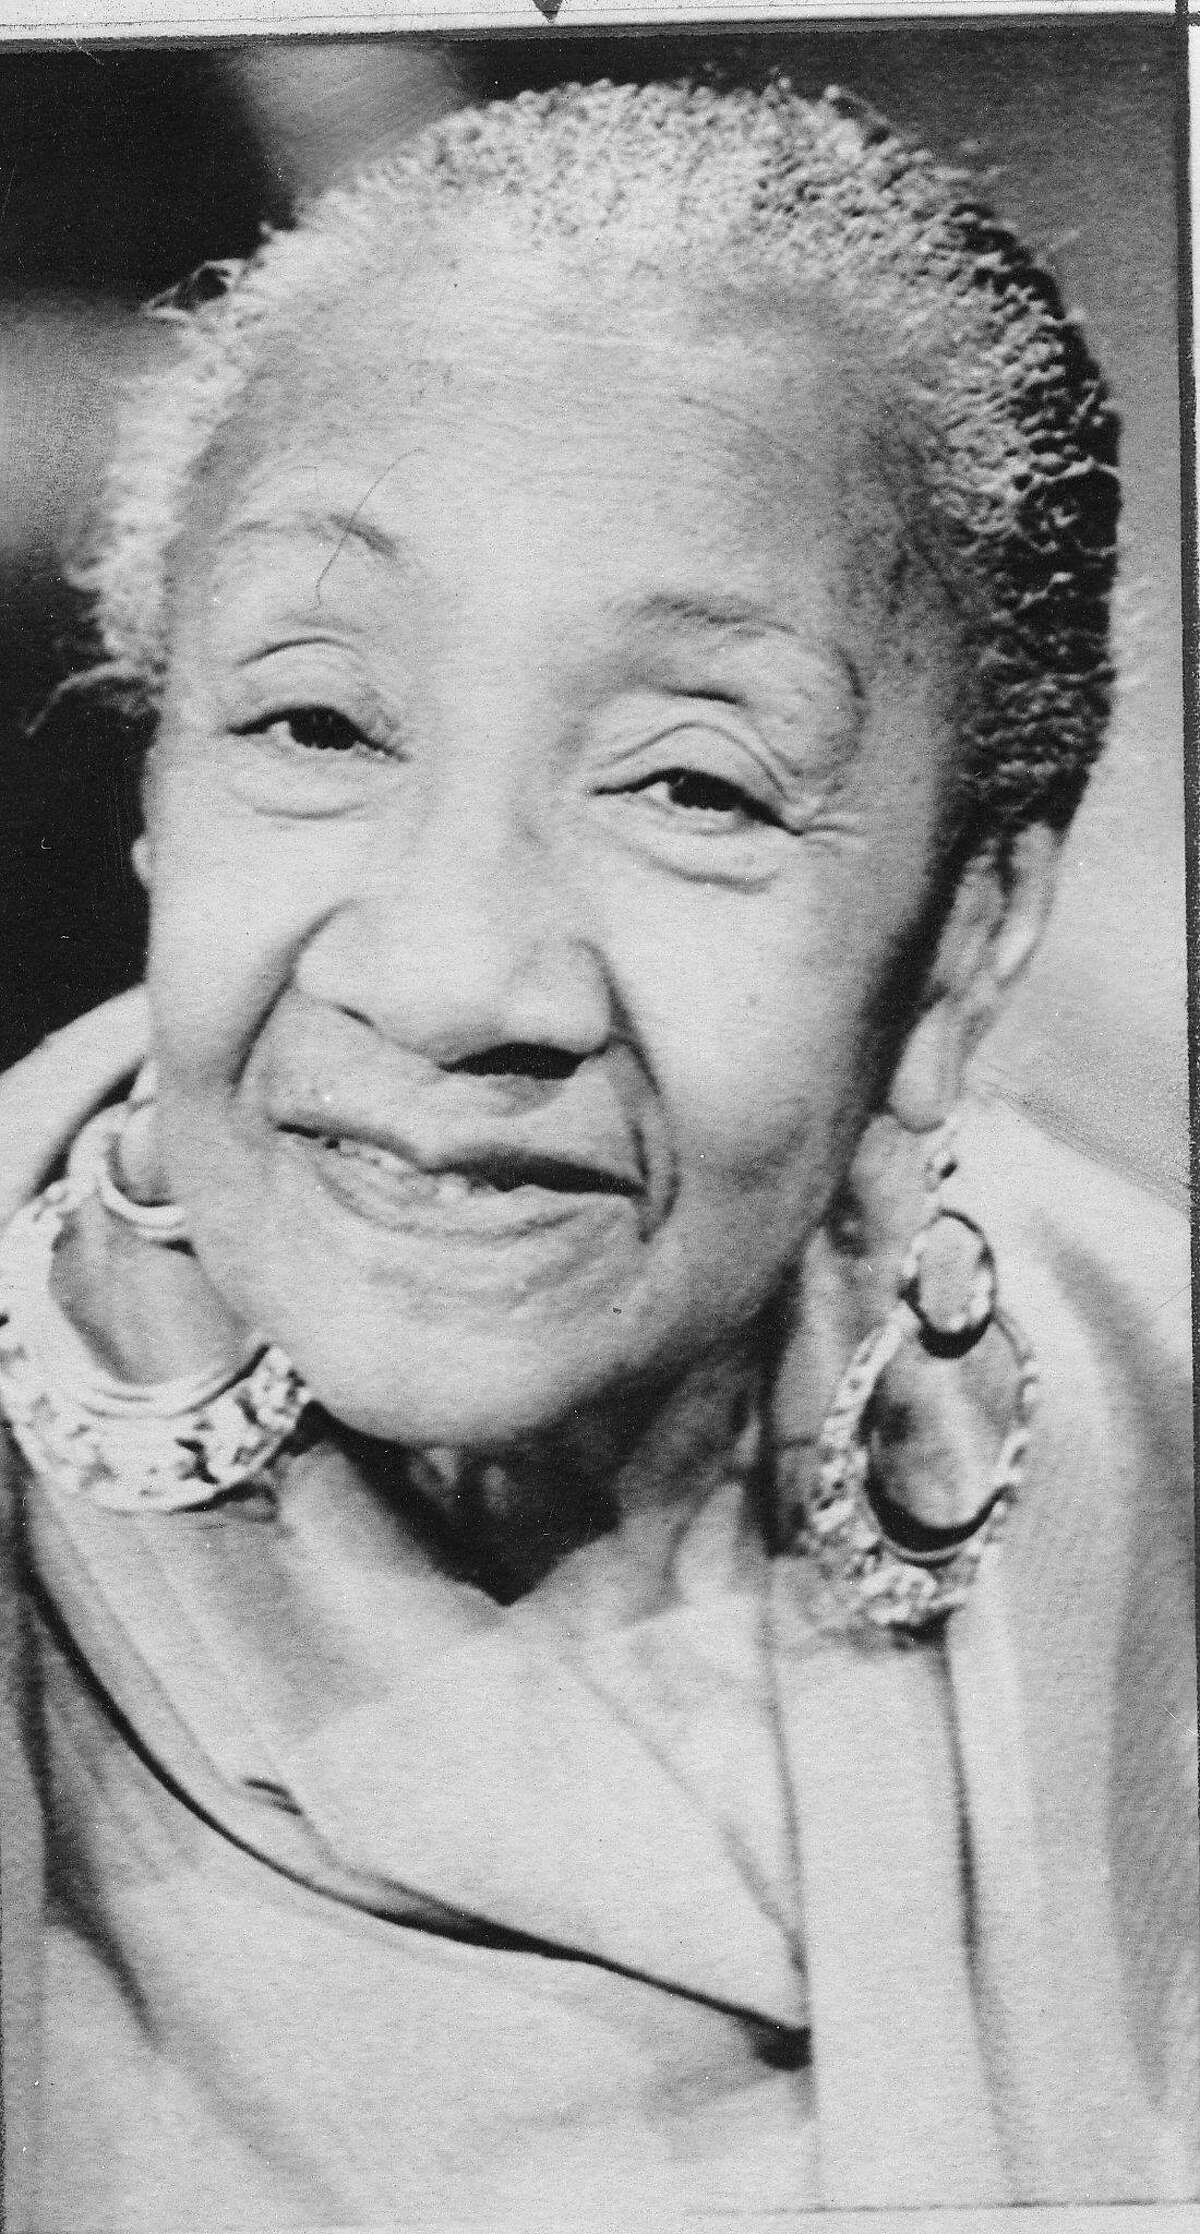 Blues singer Alberta Hunter whose voice delighted audiences for nearly 8 decades, shown here in 1979.